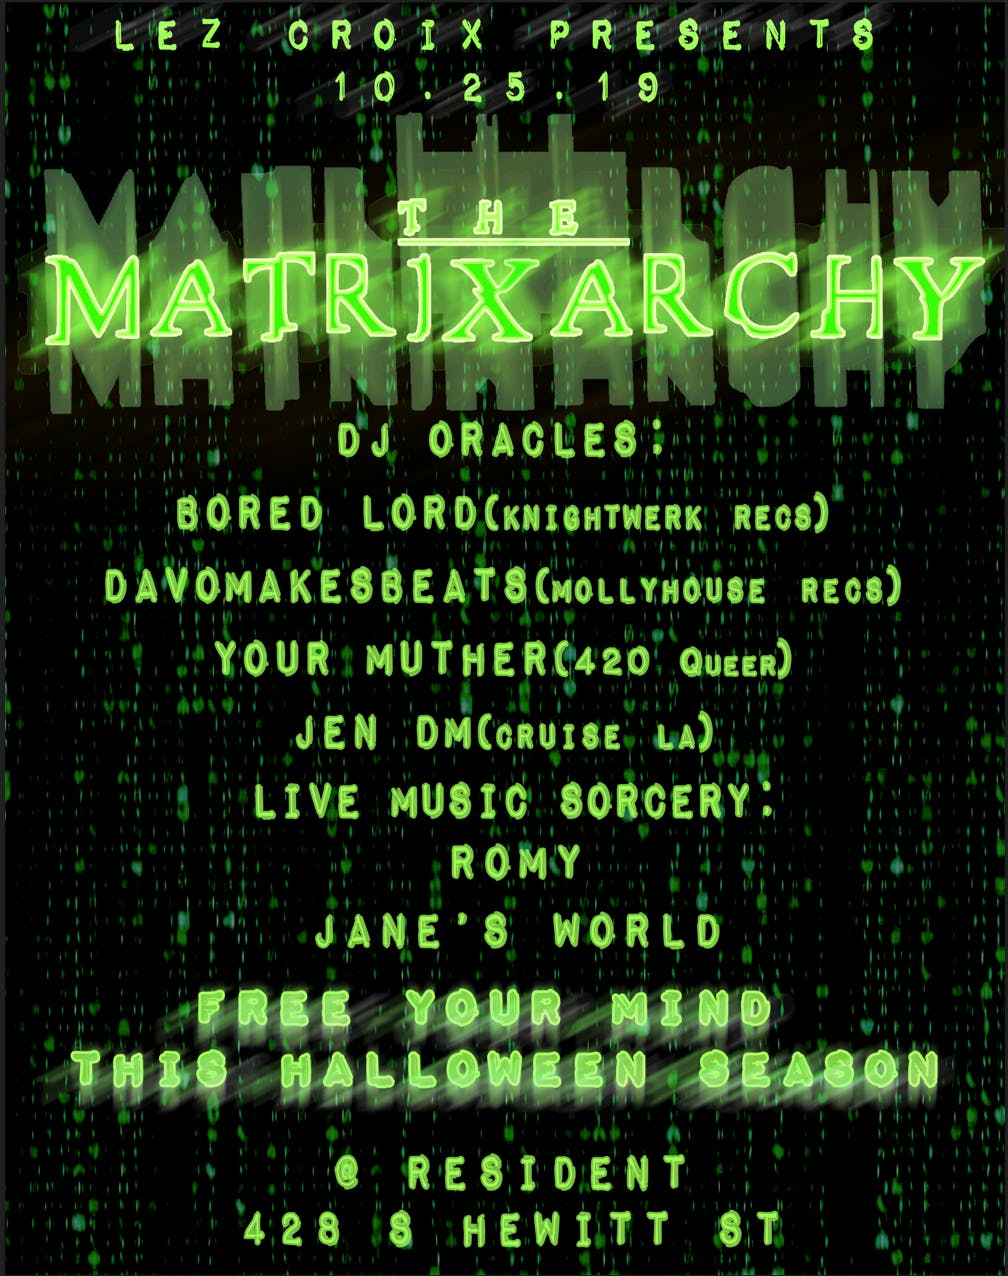 LEZ CROIX presents: the Matrixarchy Halloween Vortex